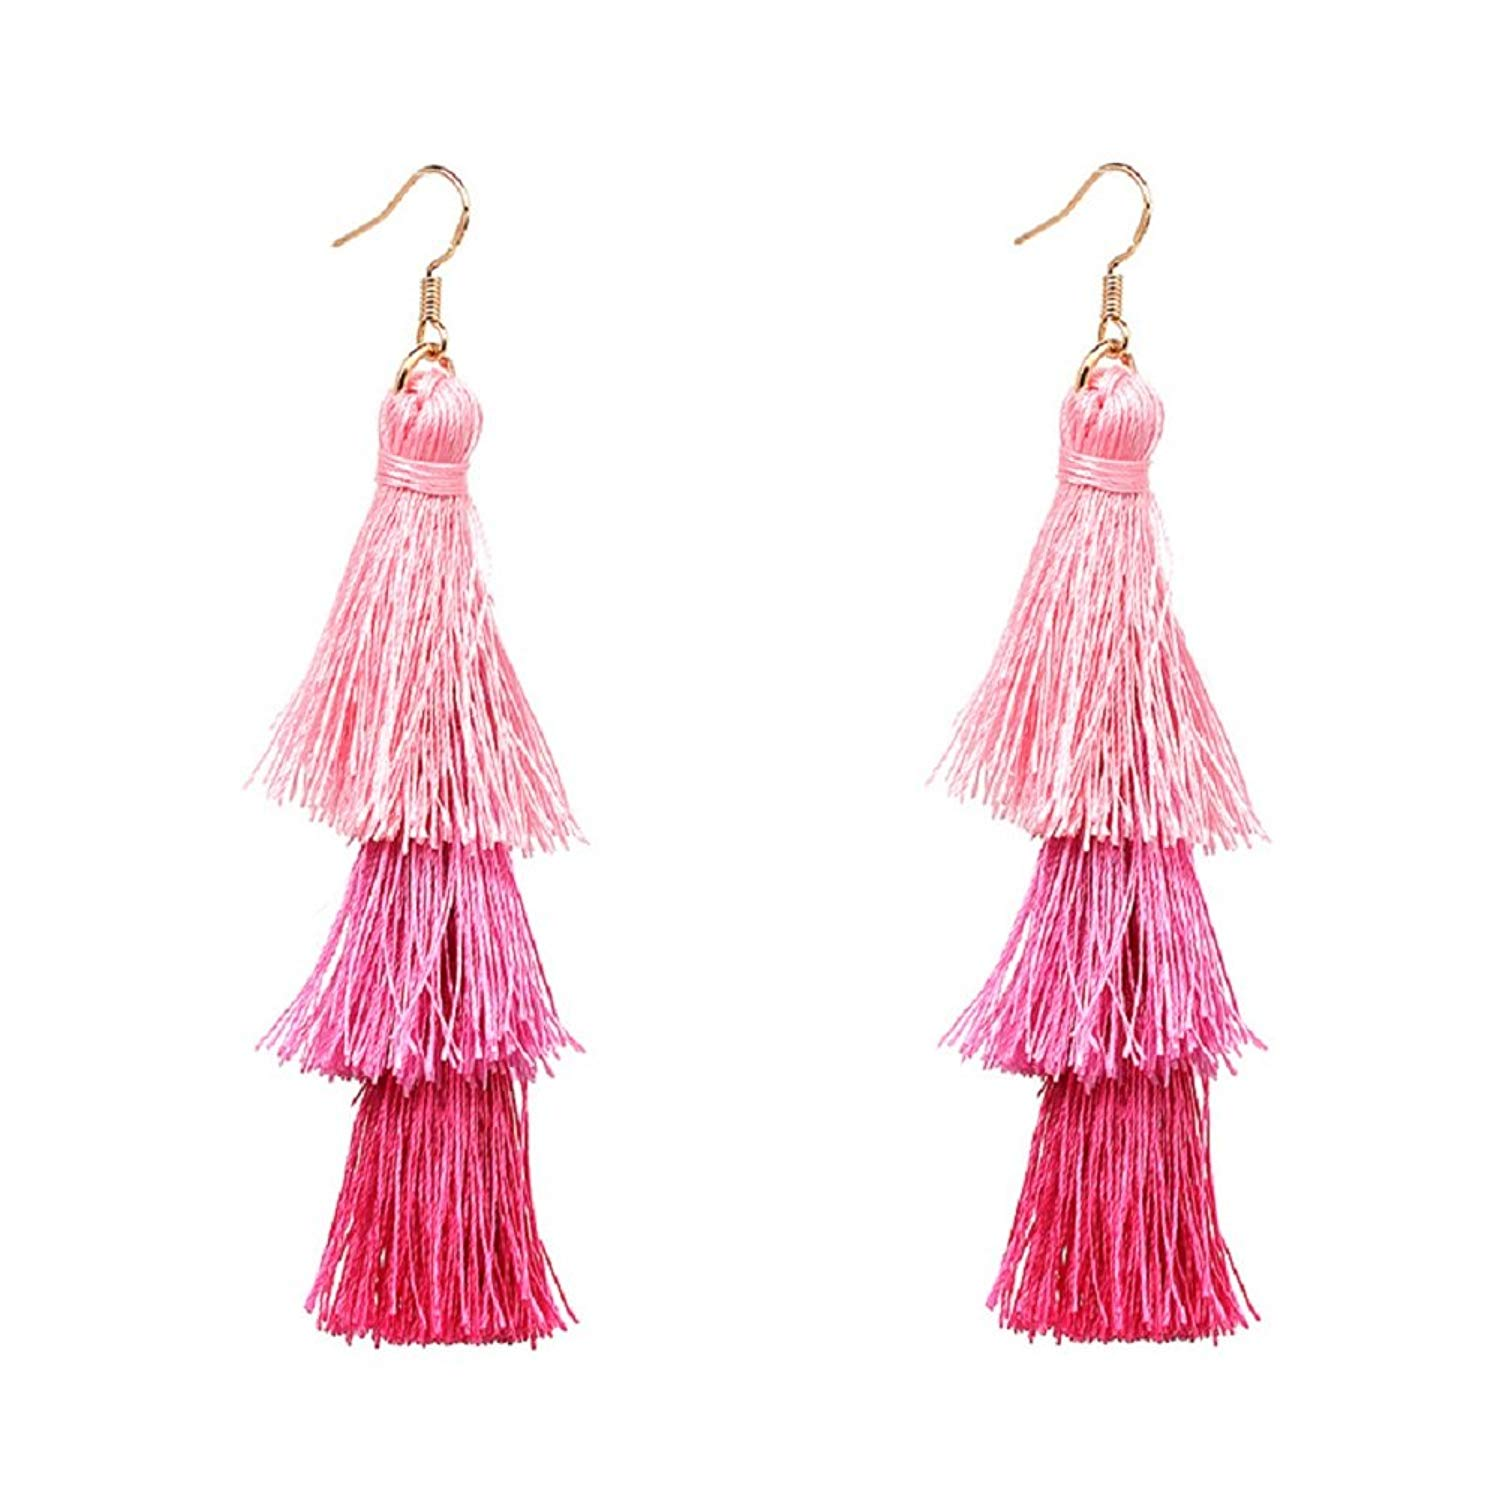 Multi Layered Bohemian Tassel Drop Earrings Colorful Tiered Thread Statement Long Dangle Earrings Gold Plated Fish Hook